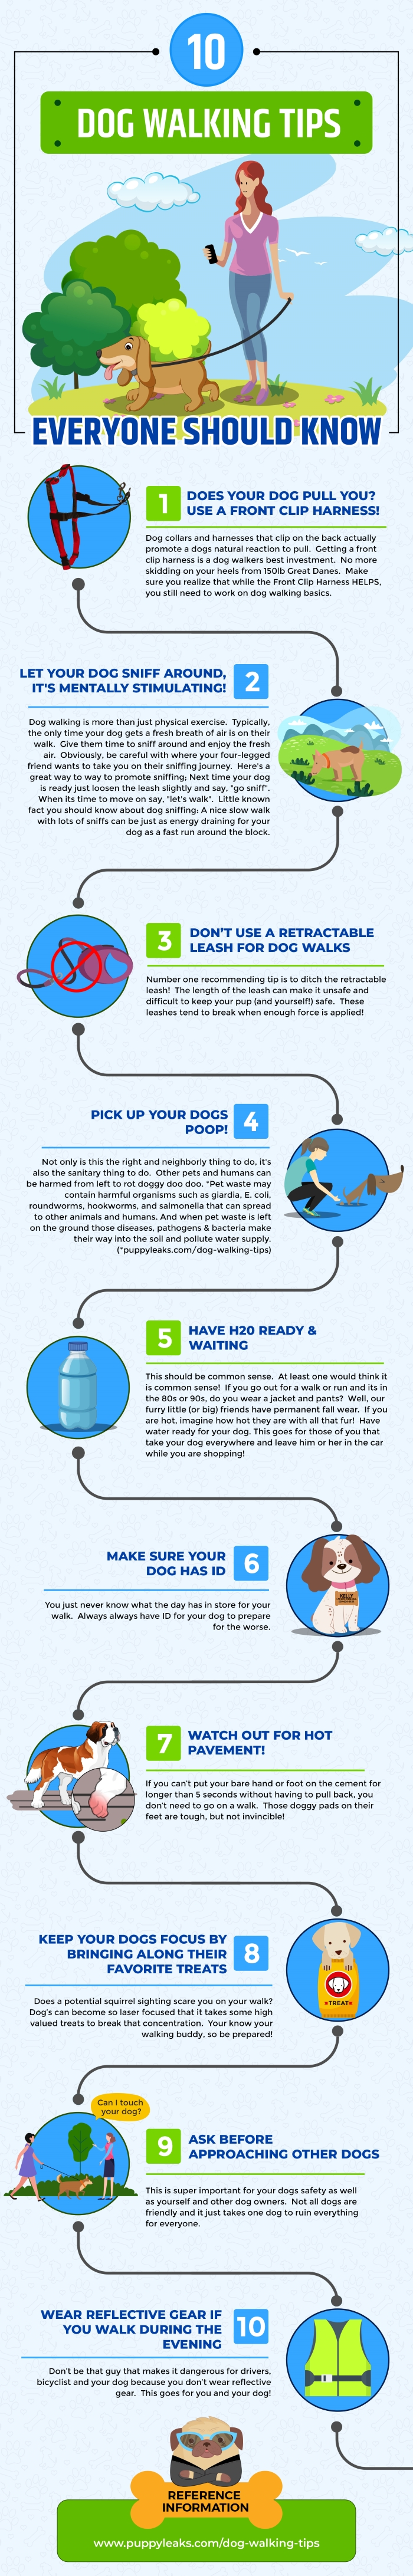 10 Dog Walking Tips Everyone Should Know